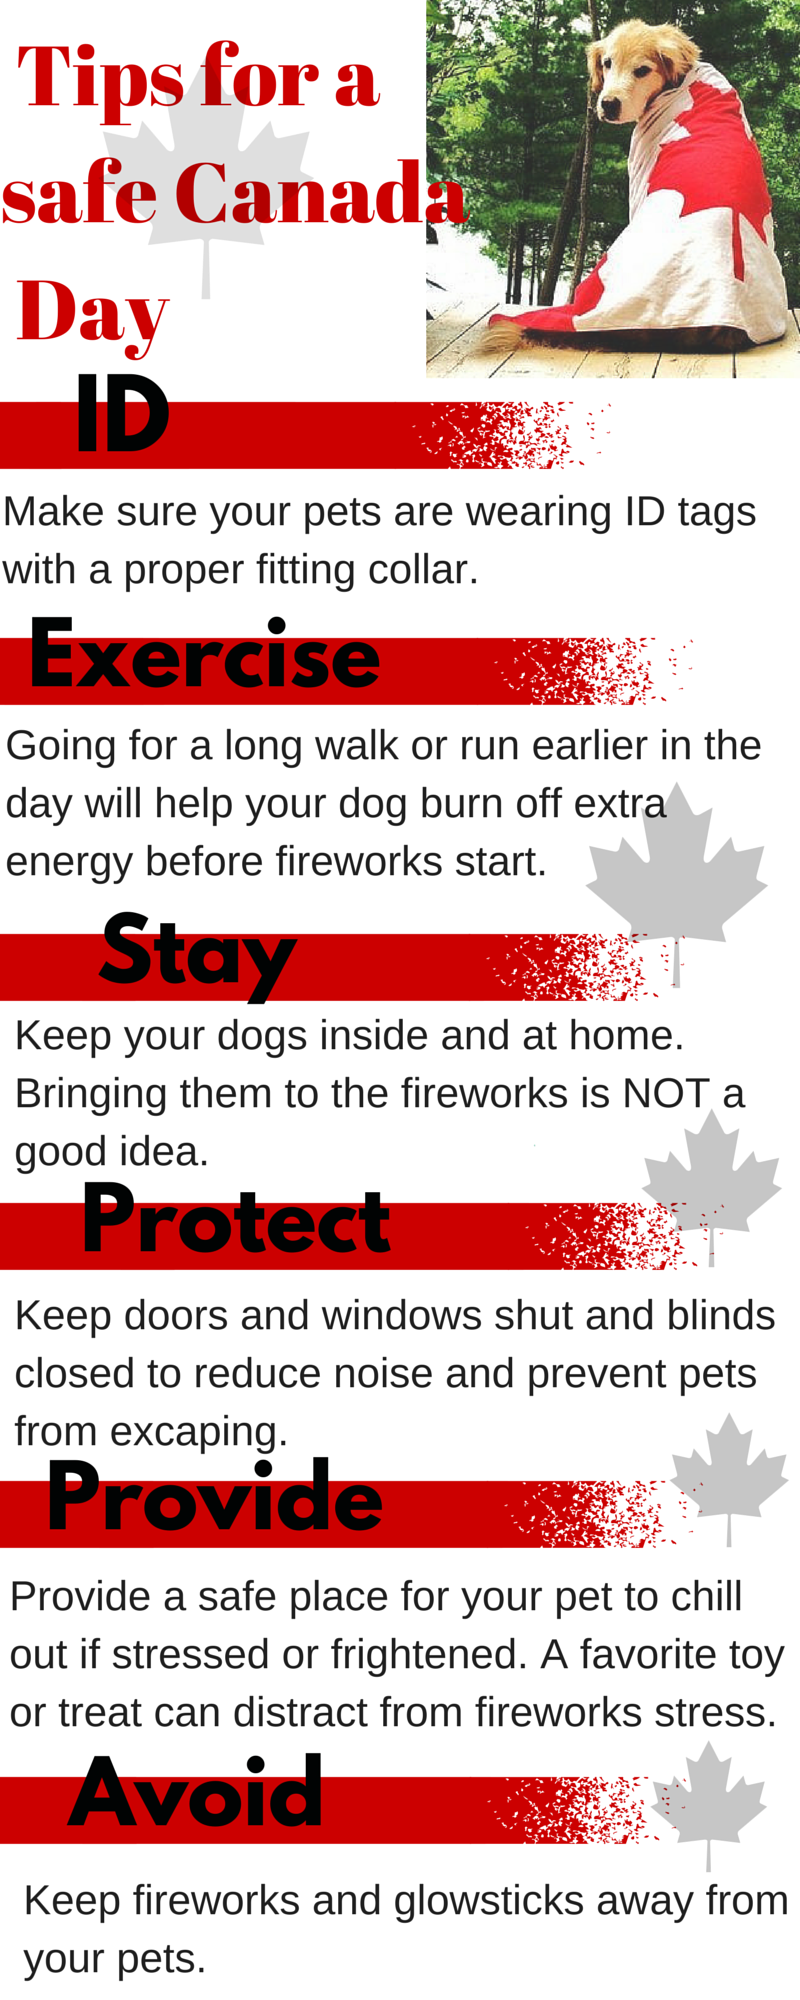 7 tips for a dog safe Canada Day (2).png